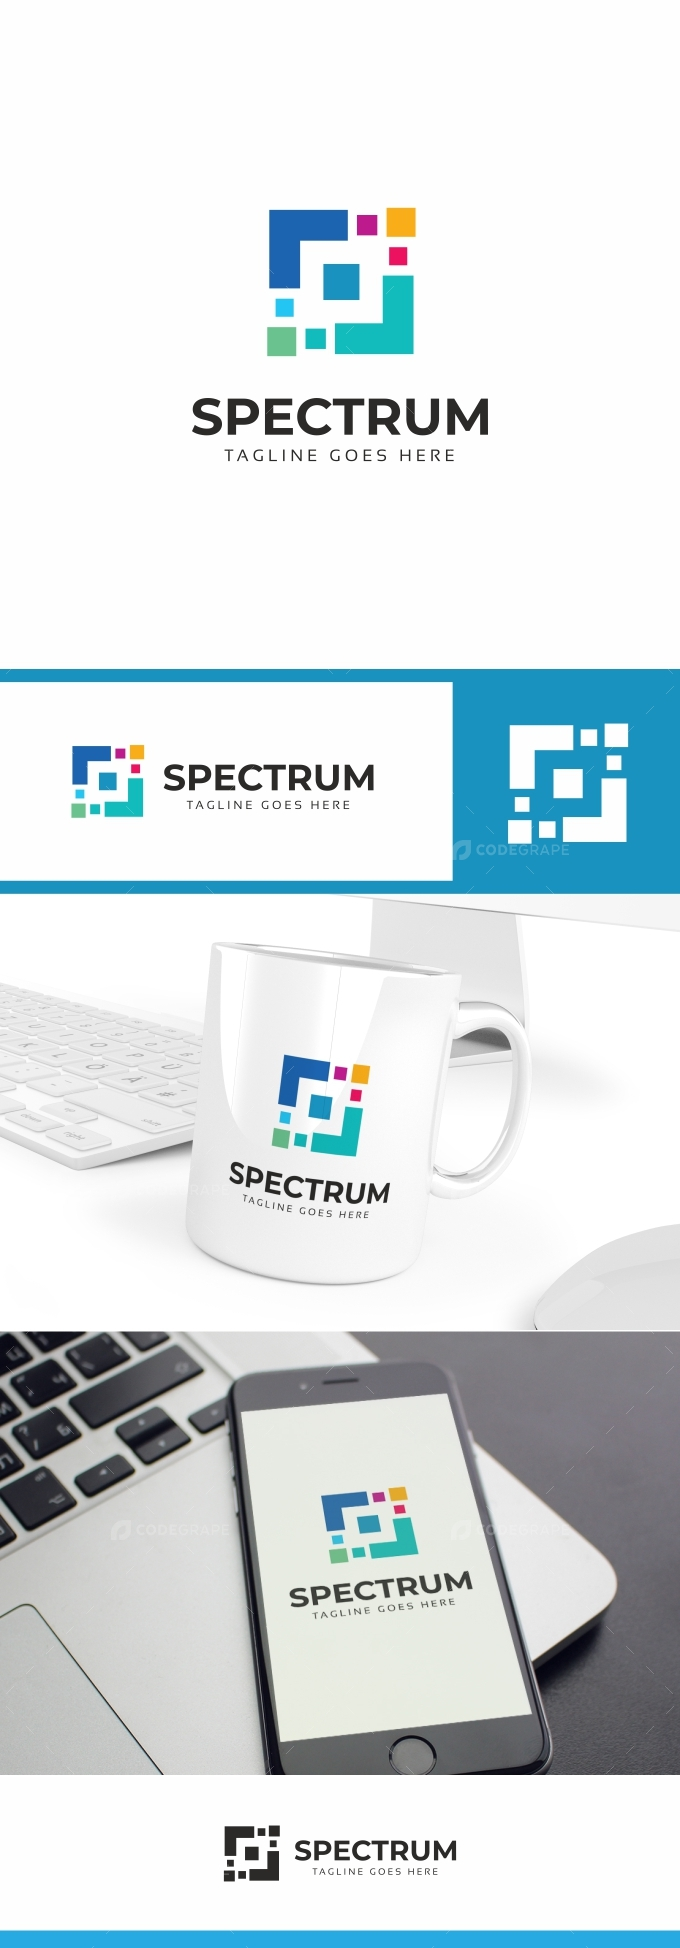 Spectrum Square Logo